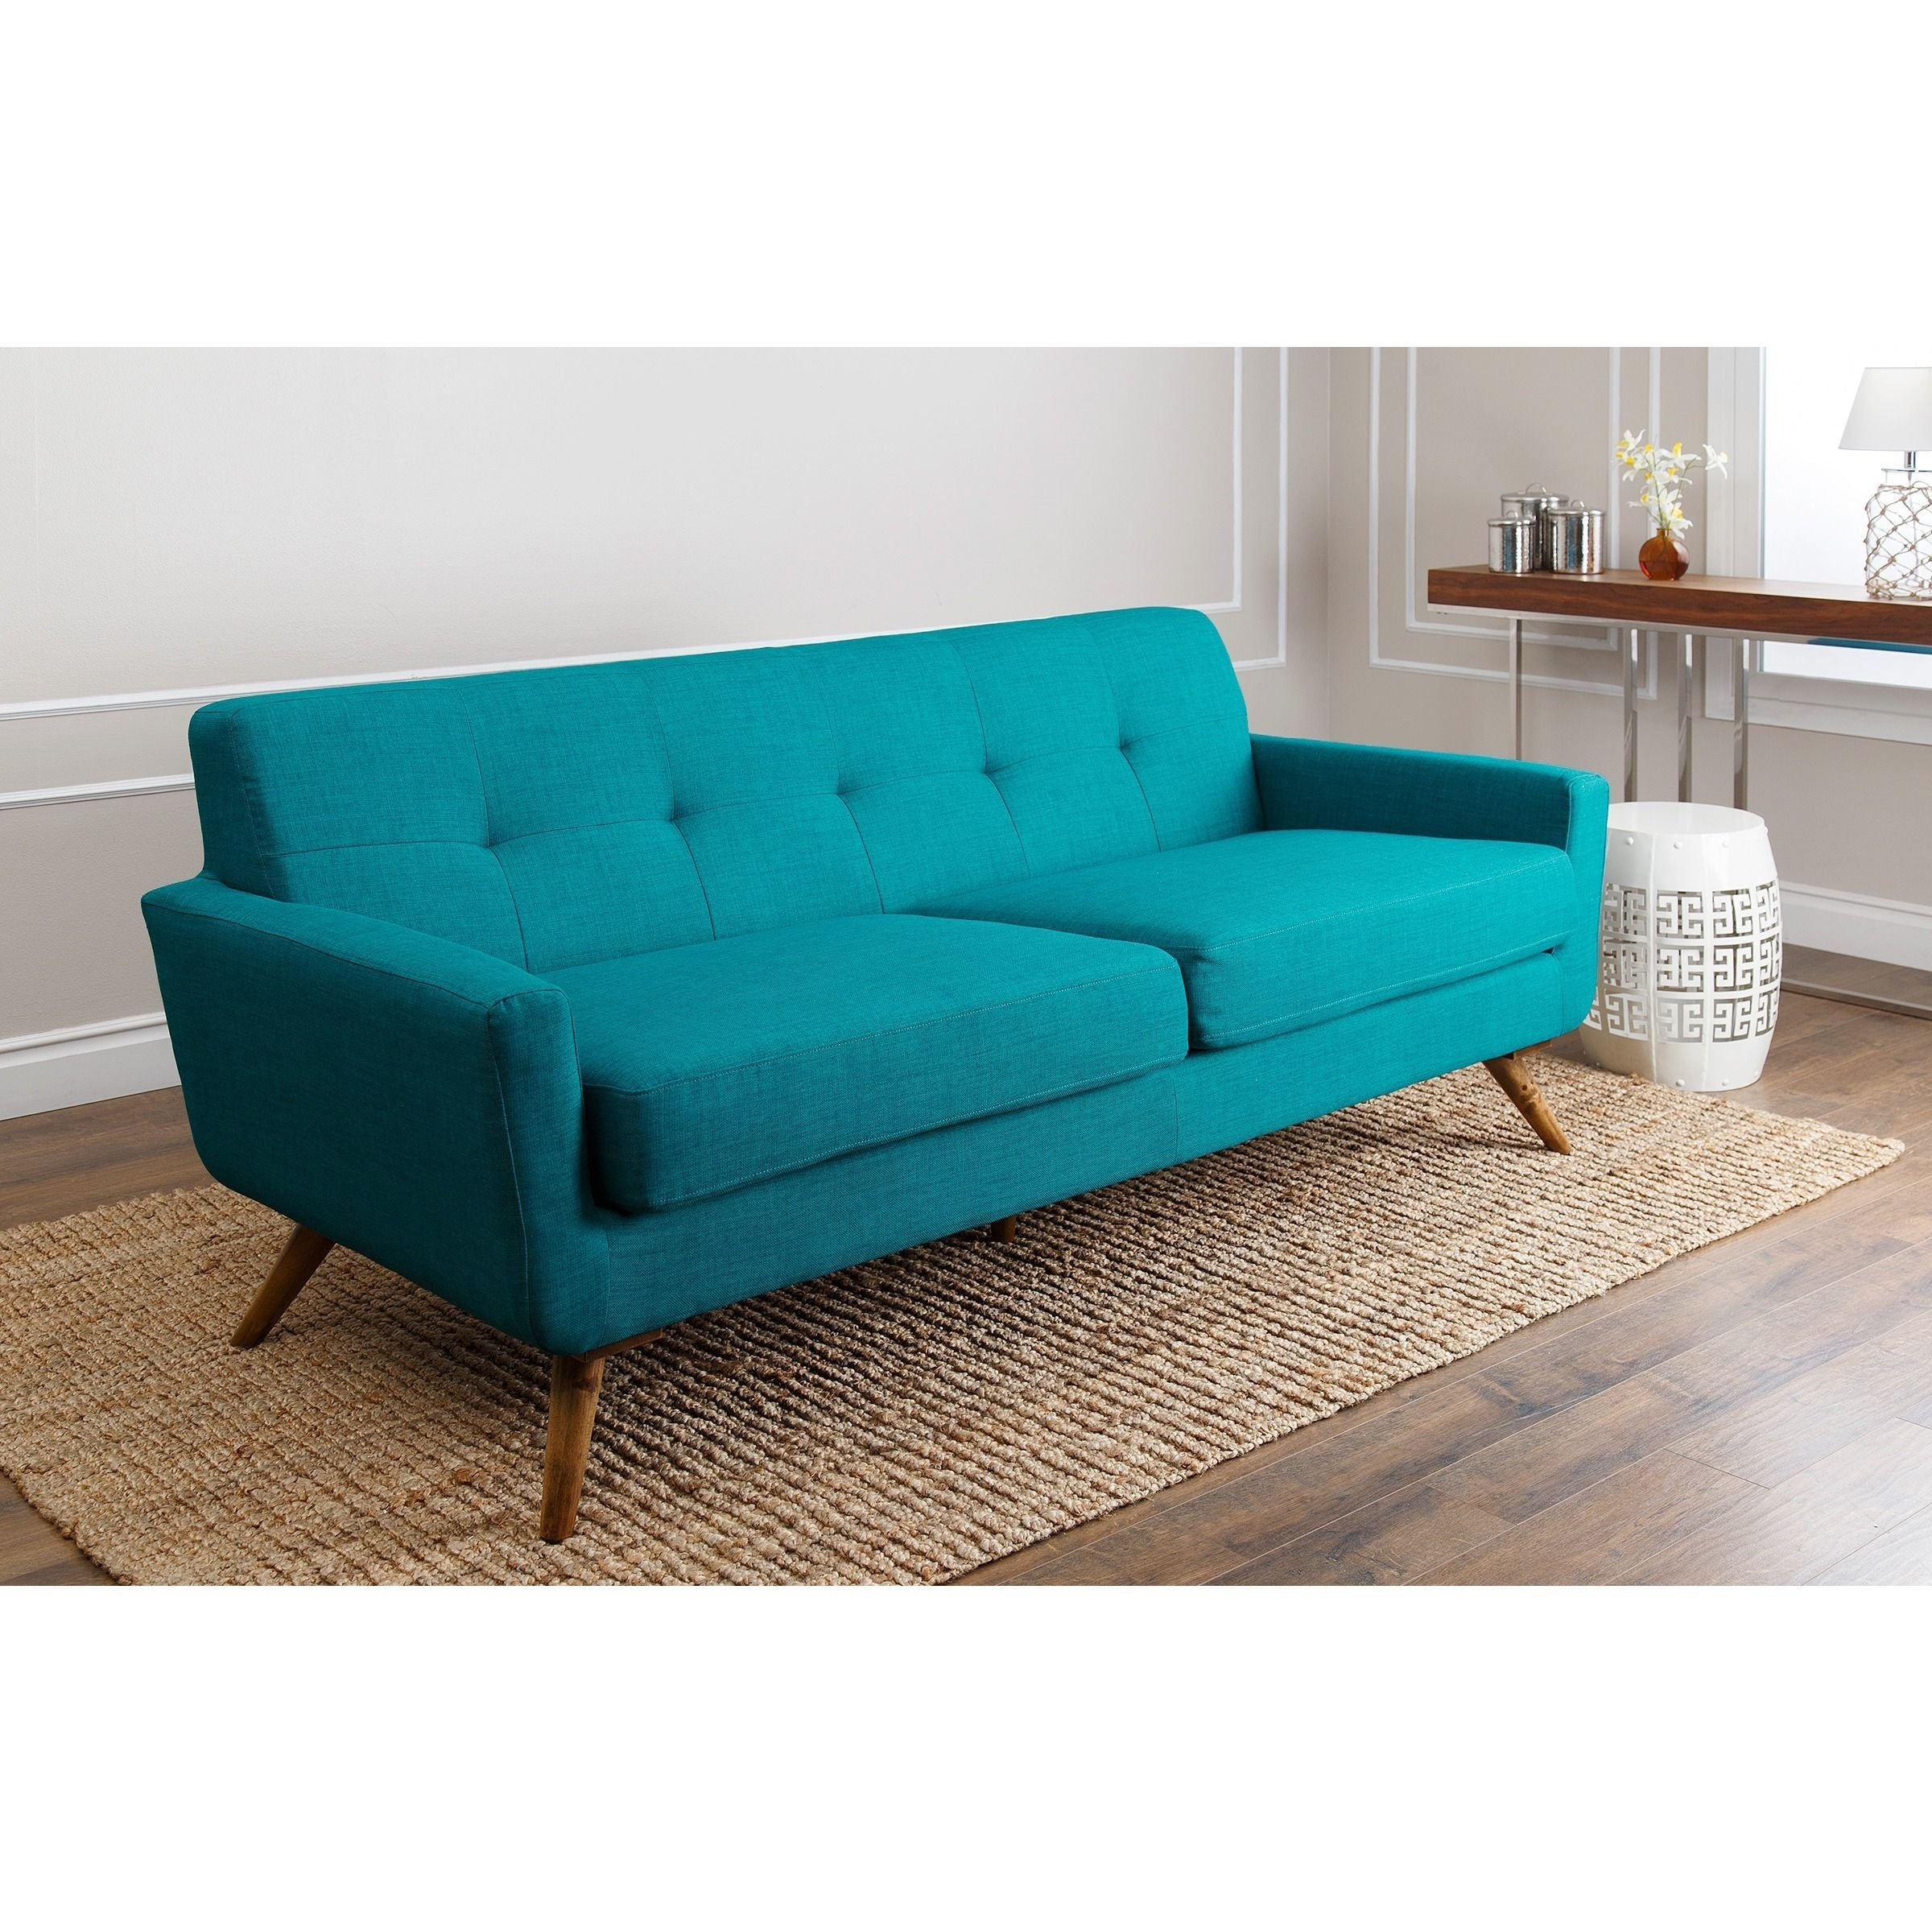 Couch Petrol Update Your Home With Modern Style Thanks To This Petrol Blue Sofa